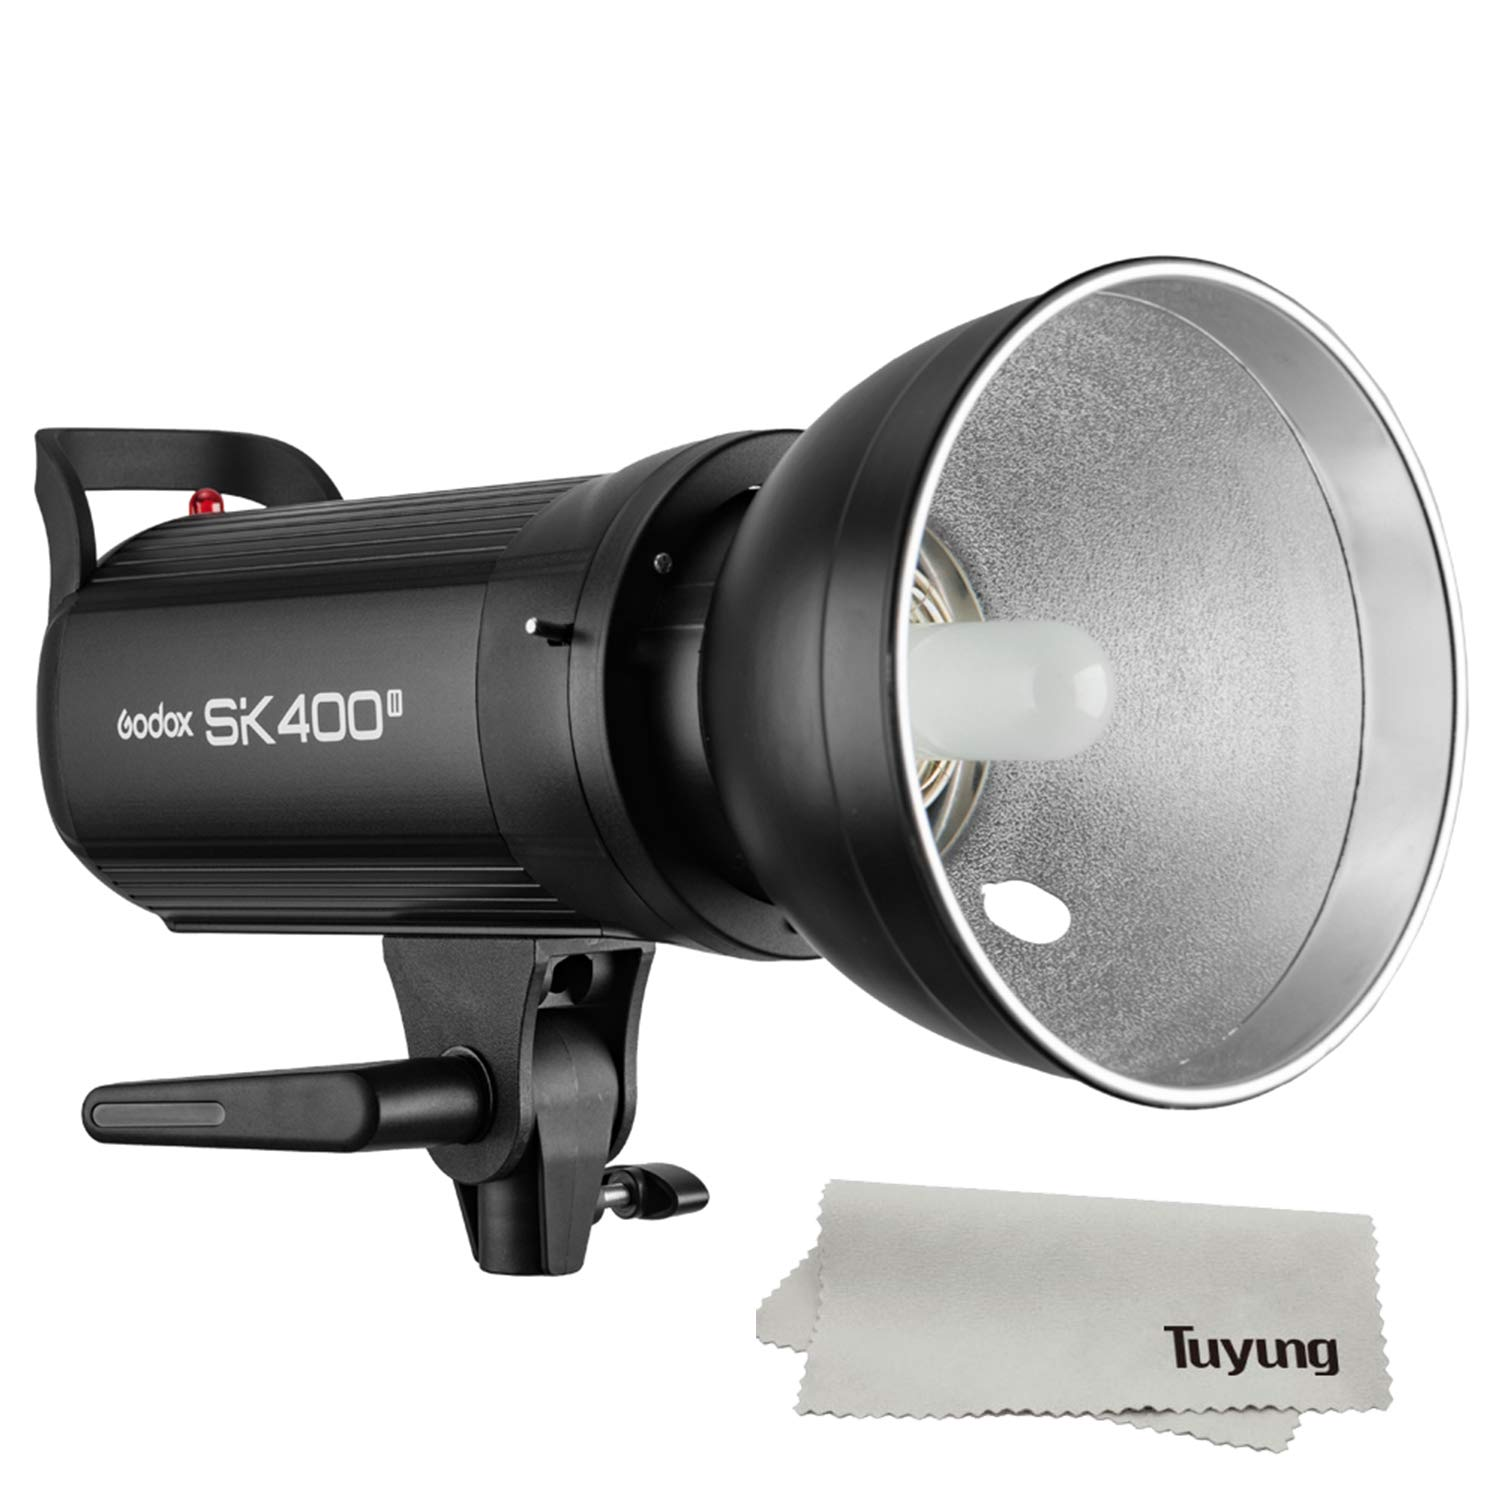 Godox SK400II 400 Monolight with Built-in Godox 2.4G Wireless X System Bowens Mount Strobe Flash for Photography Lighting Portrait Photography